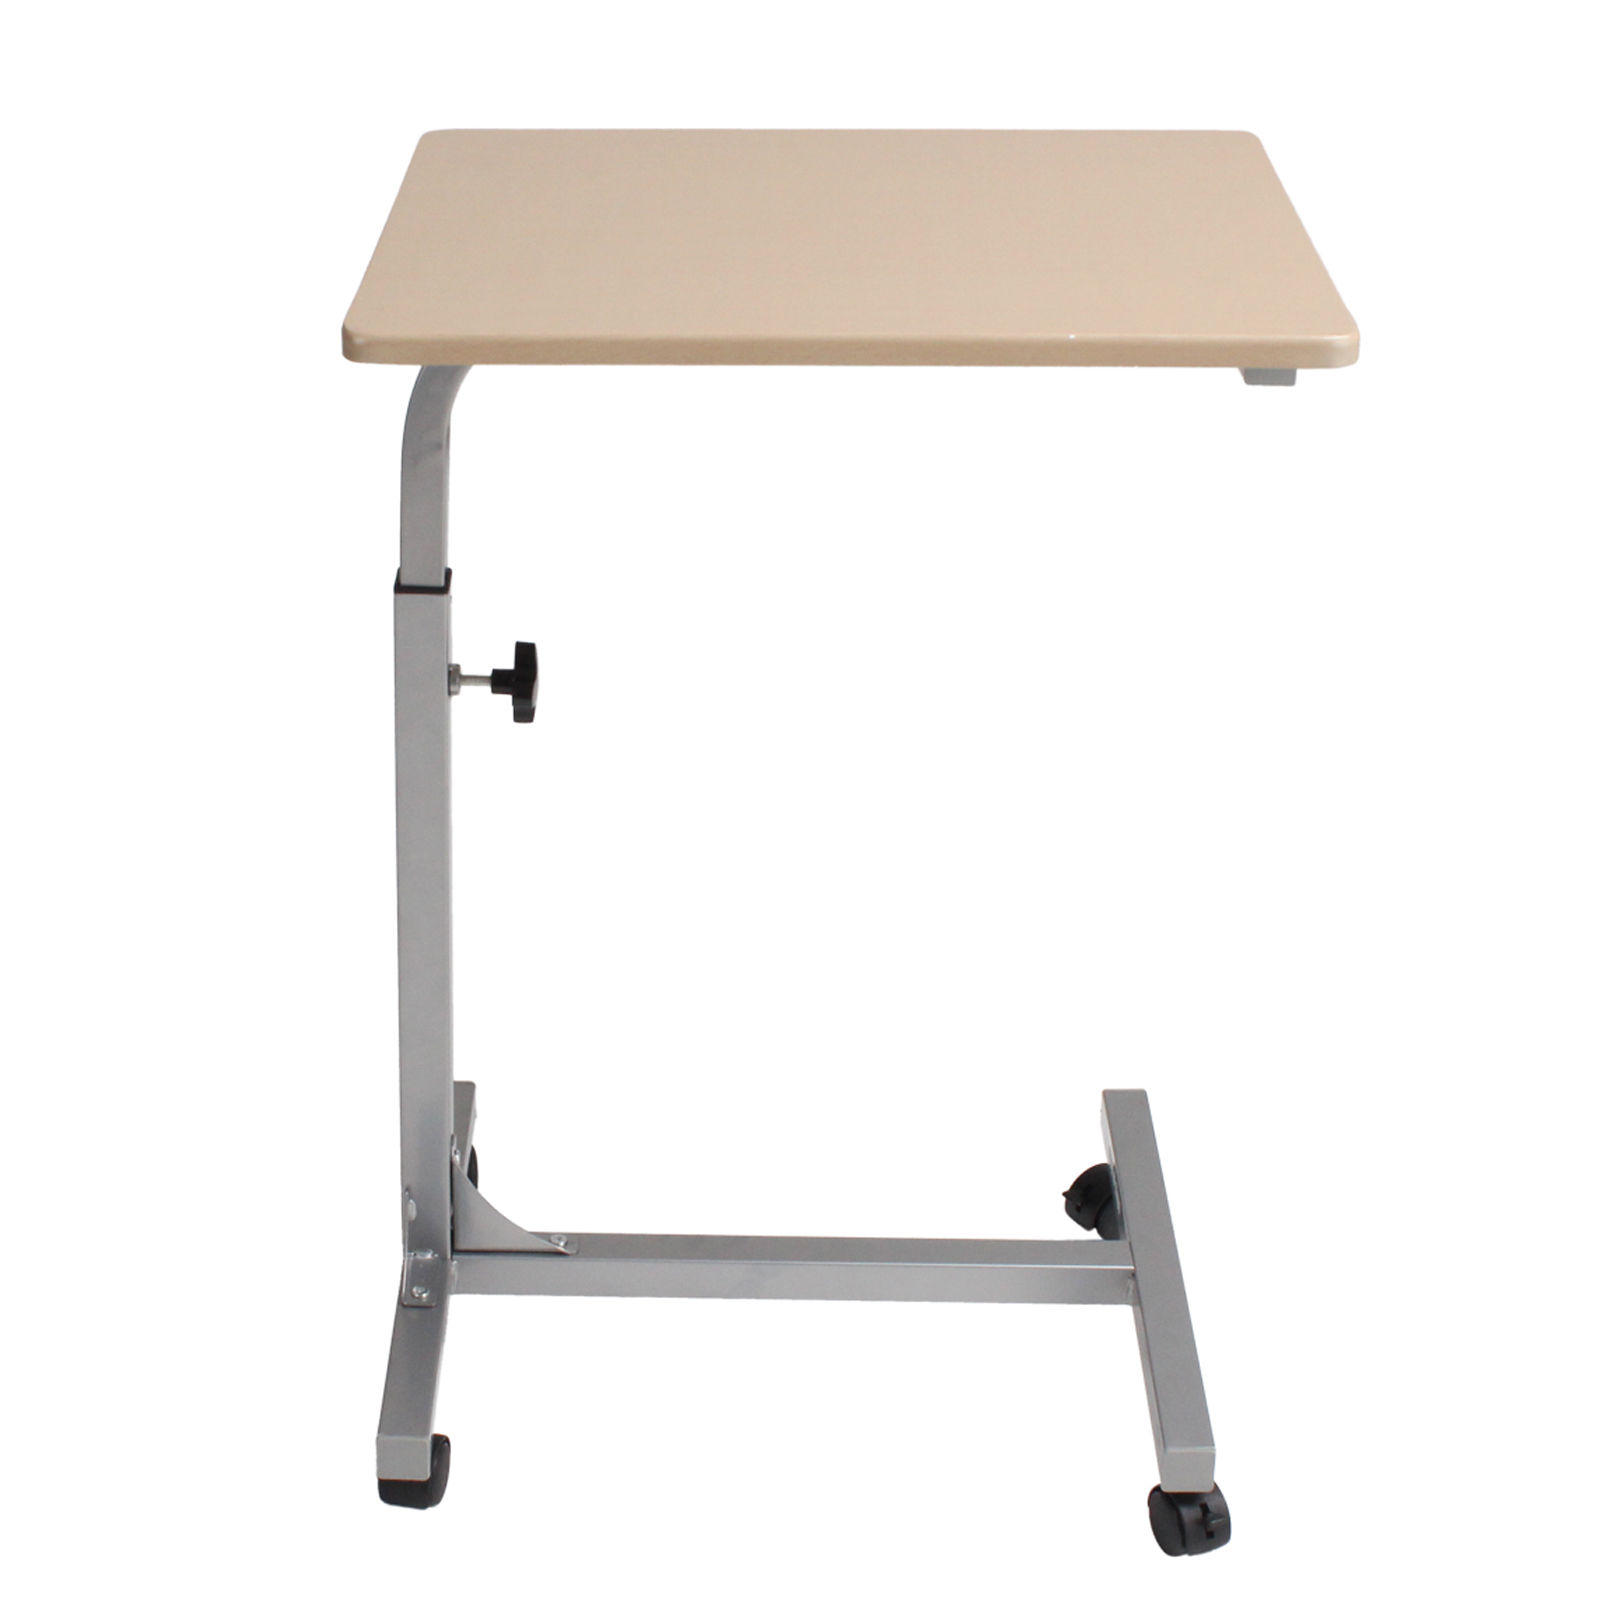 Tisch Mit Rollen Höhenverstellbar Height Adjustable Rolling Laptop Notebook Desk Bed